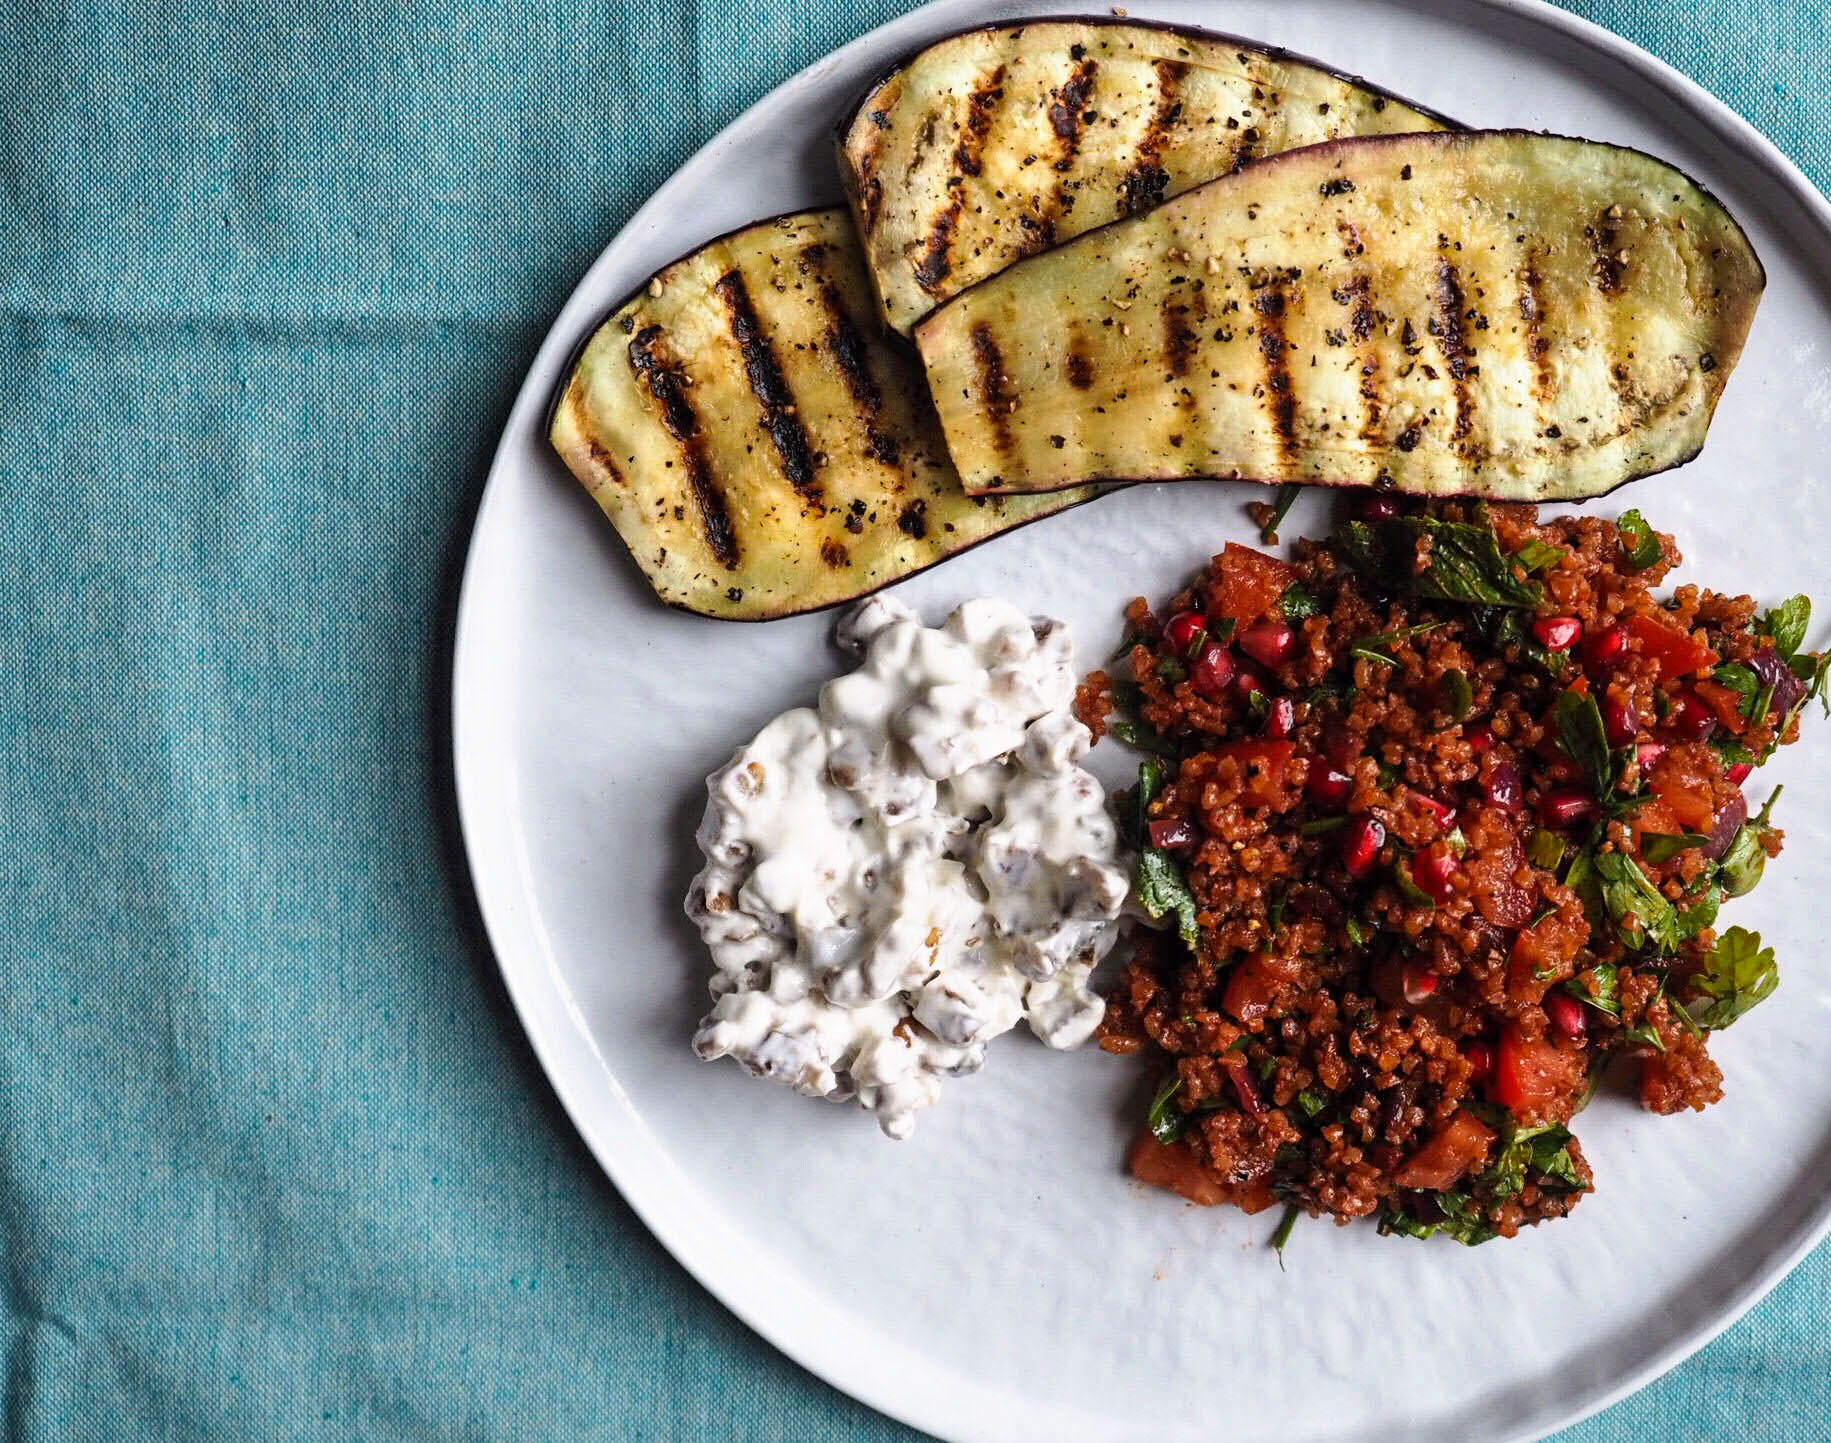 appetite - Griddled aubergine, date, walnut and yoghurt salad and kisir